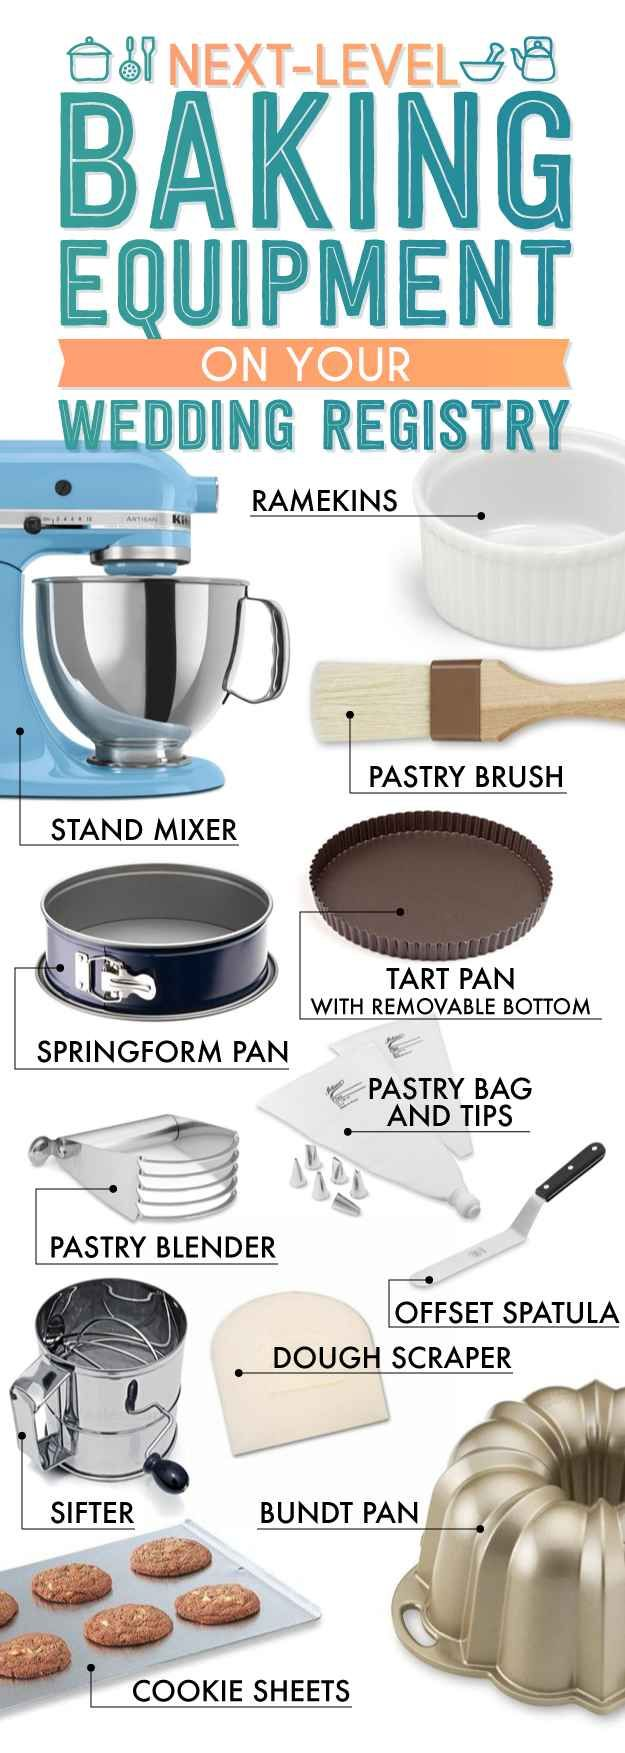 Marvelous The Essential Wedding Registry List For Your Kitchen